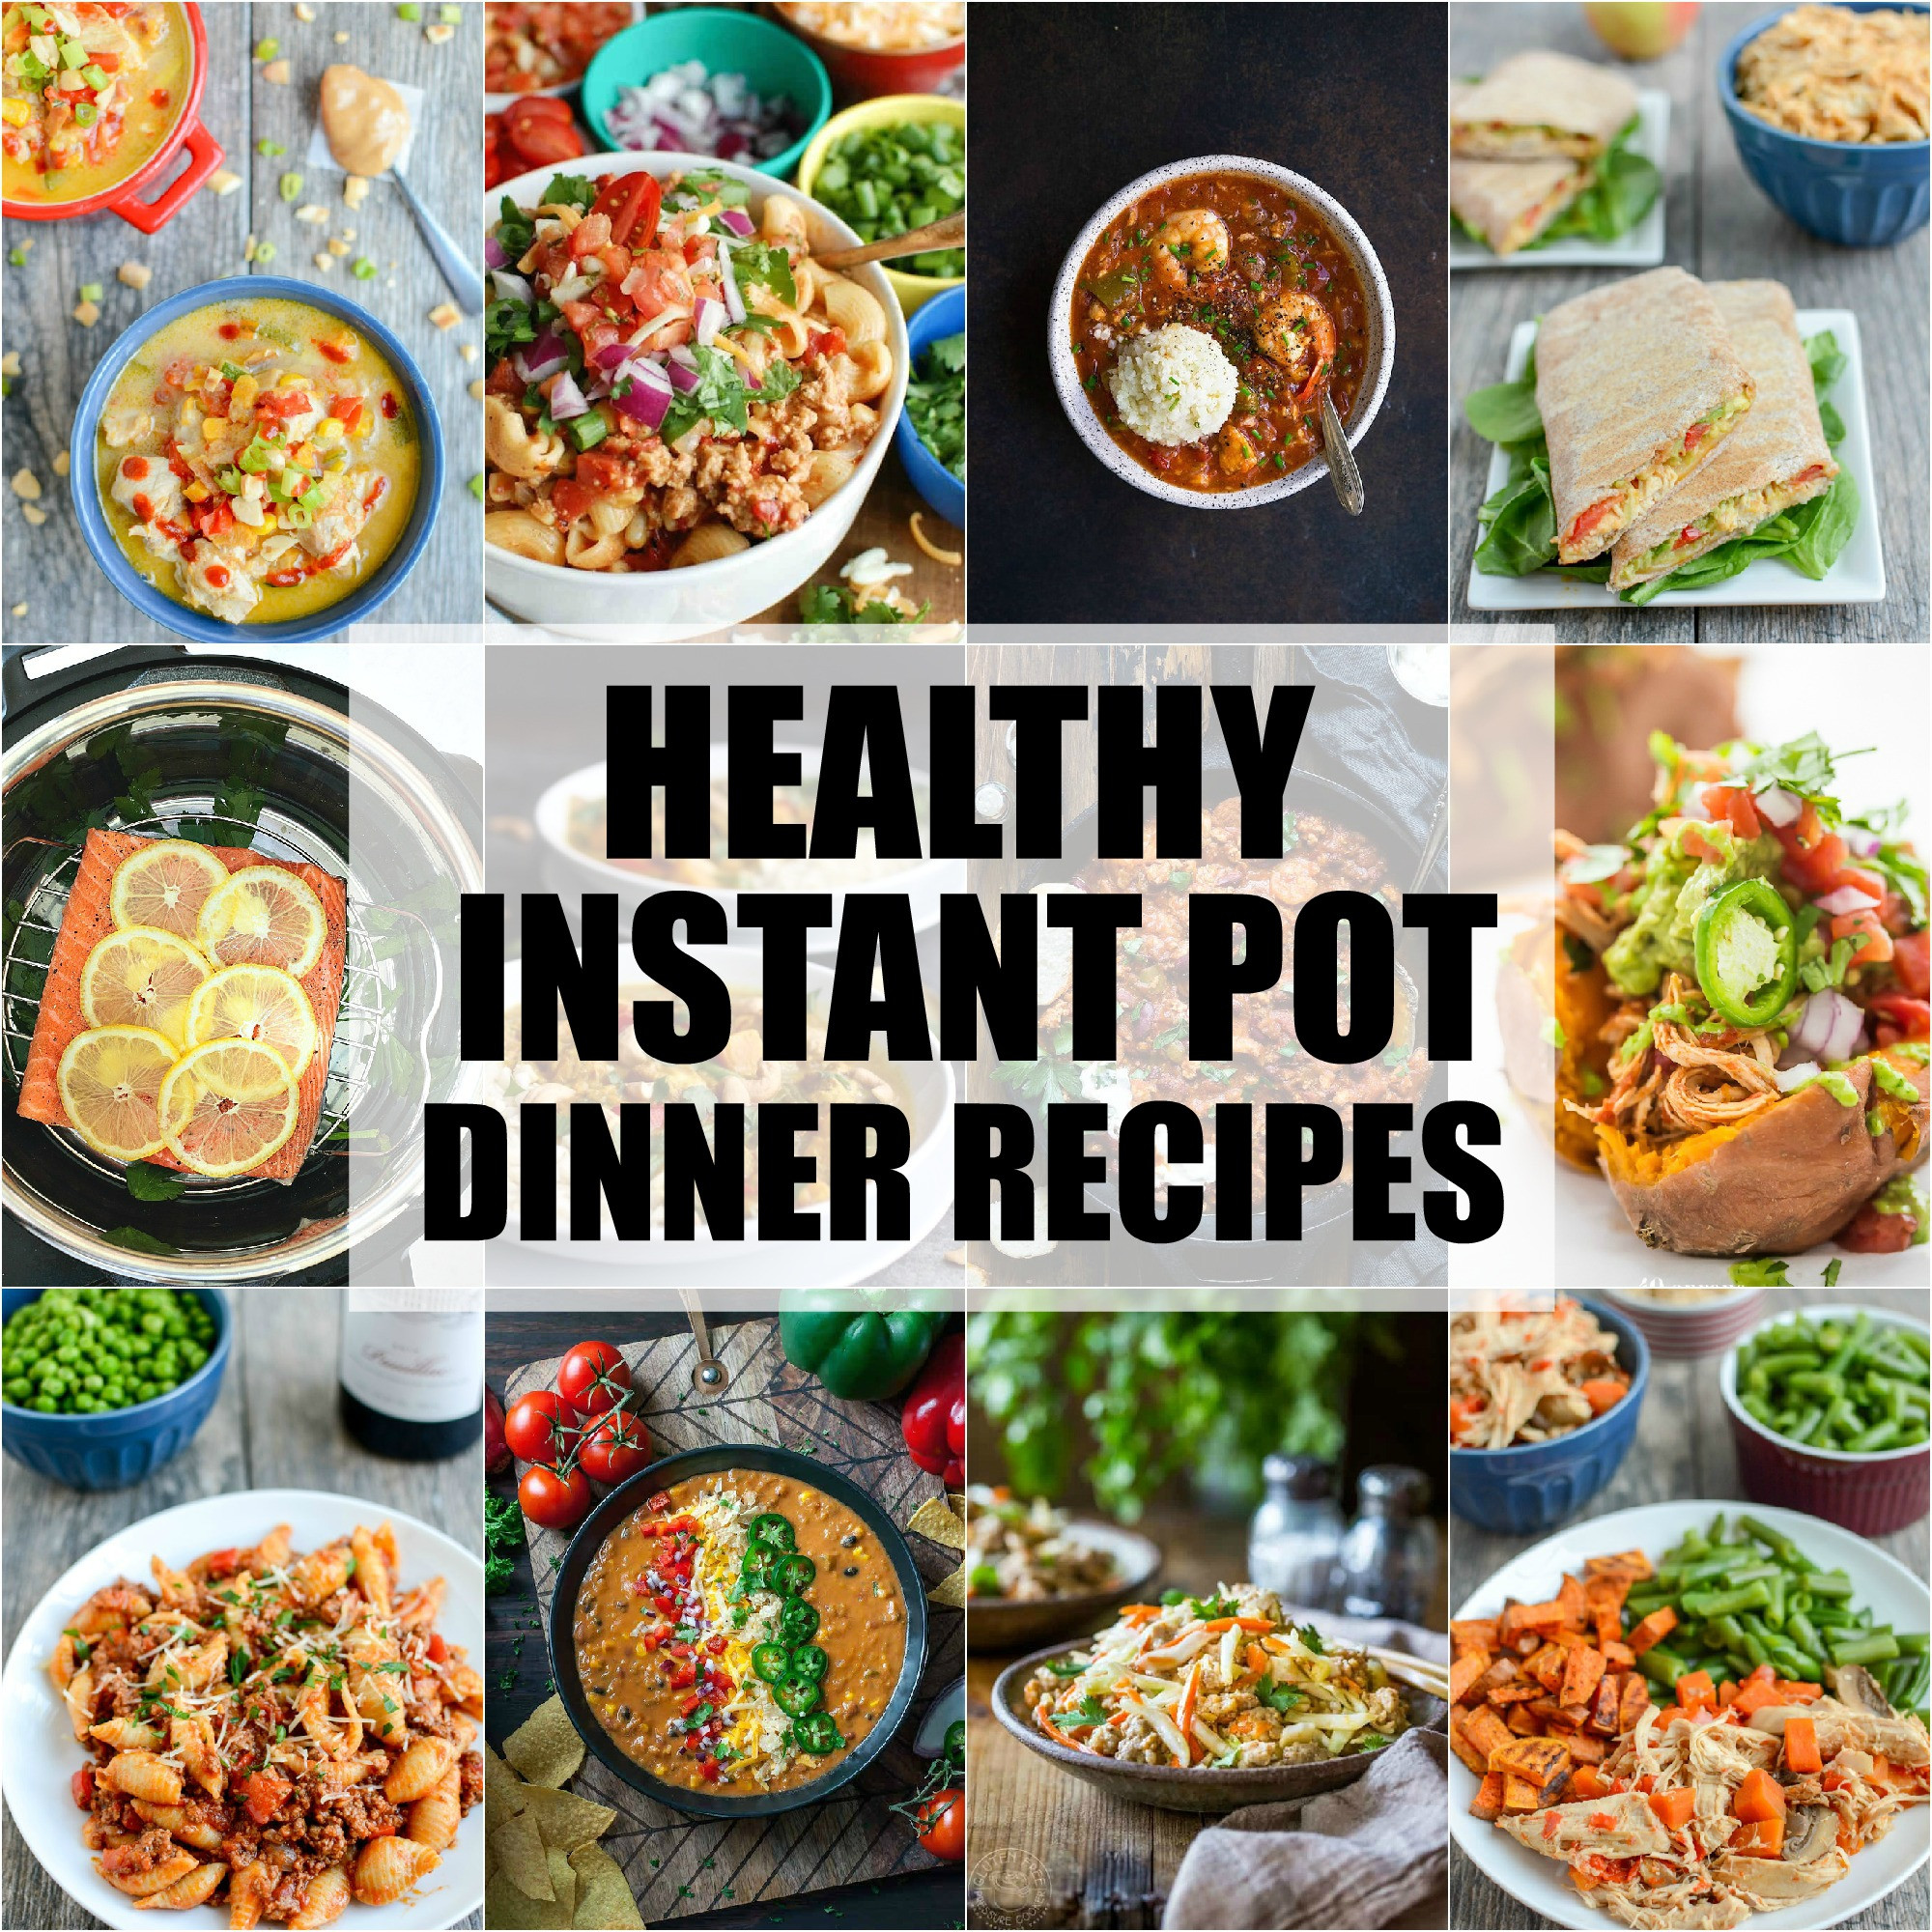 Healthy Instant Pot Dinner Recipes  Healthy Instant Pot Dinner Recipes